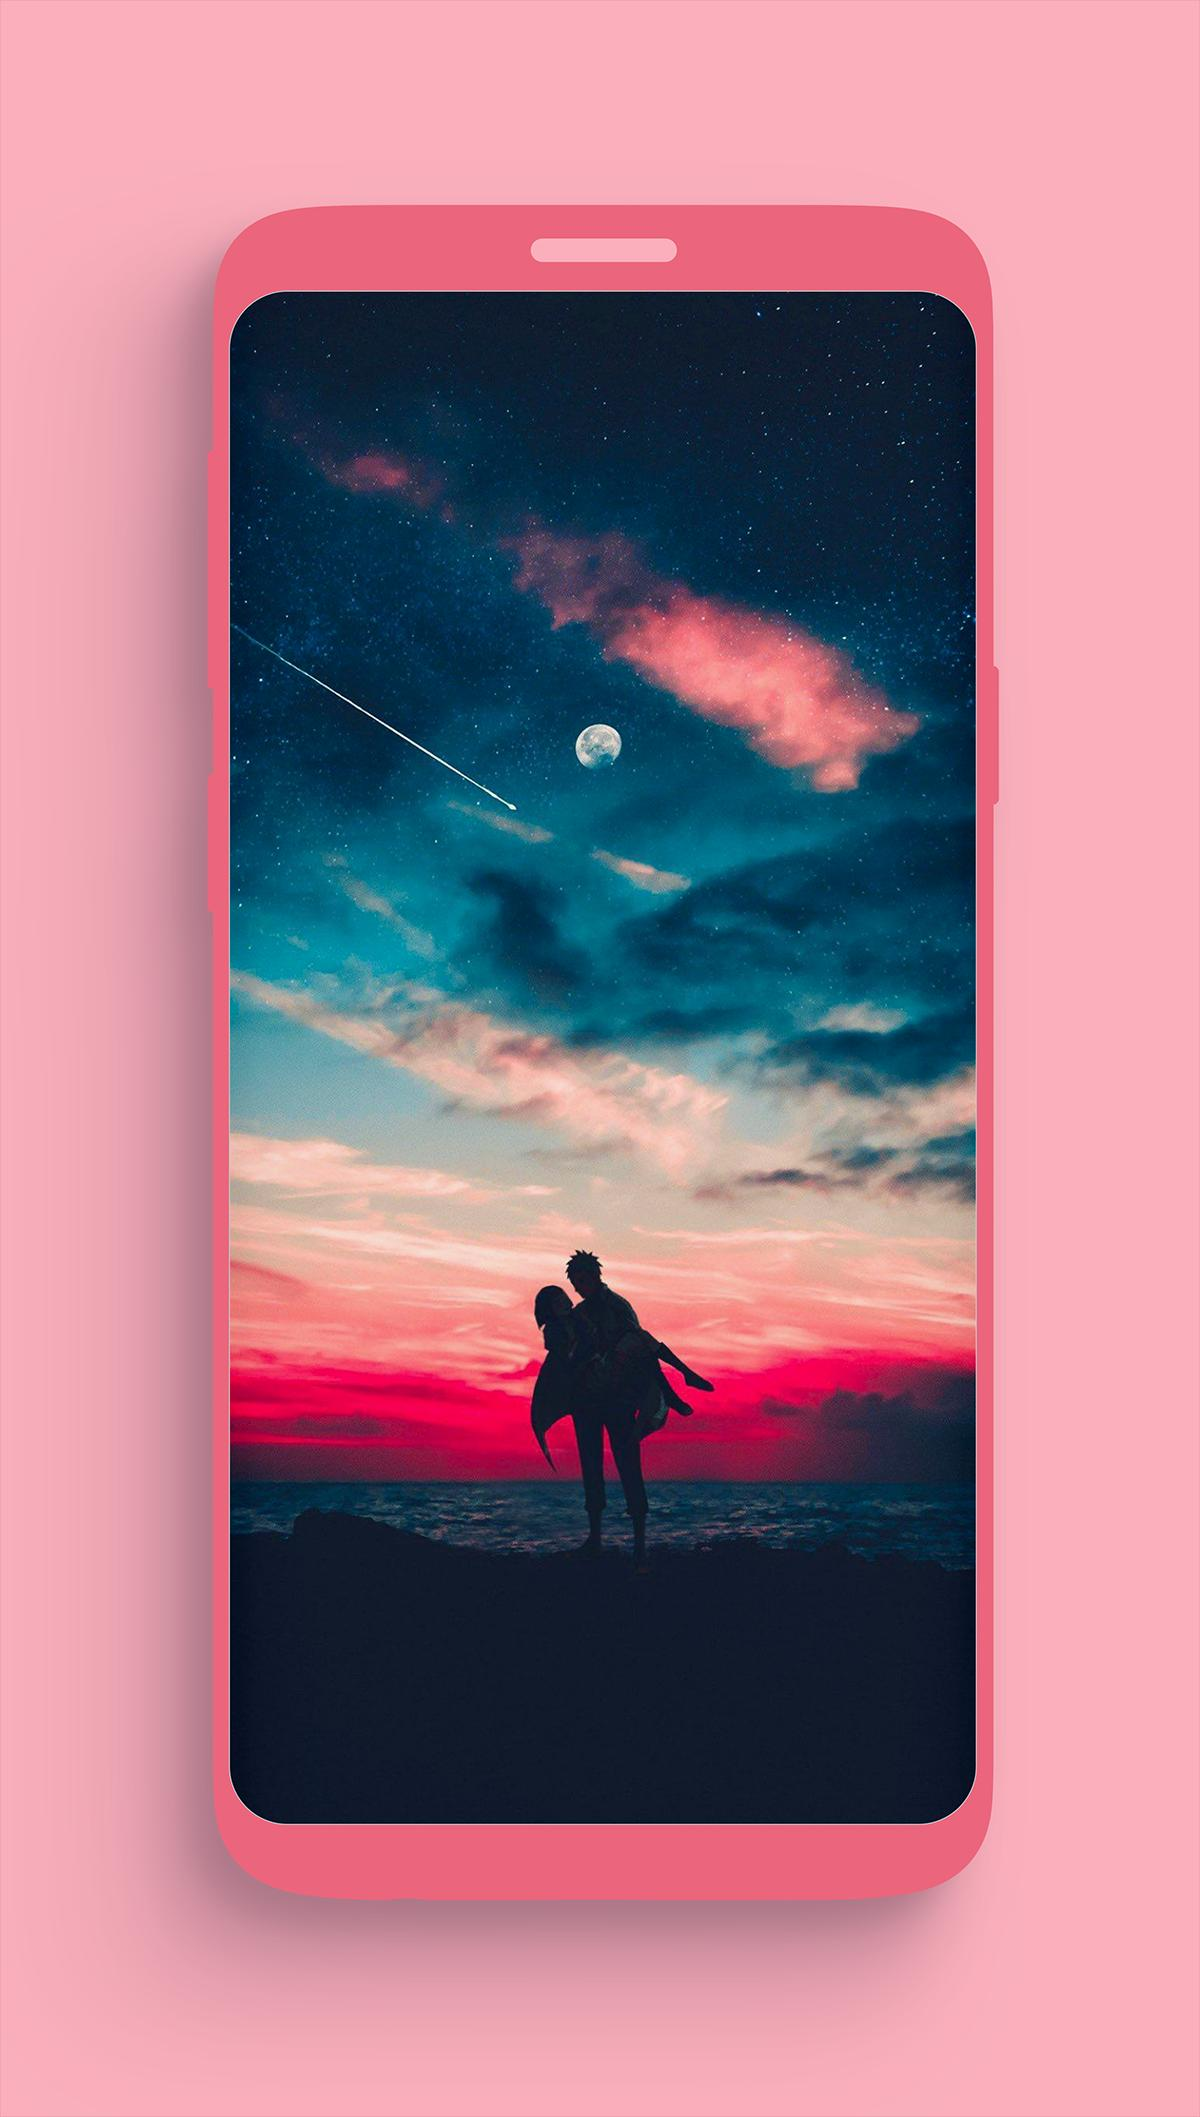 Love Wallpaper Hd Full Hd 2k 4k 2019 For Android Apk